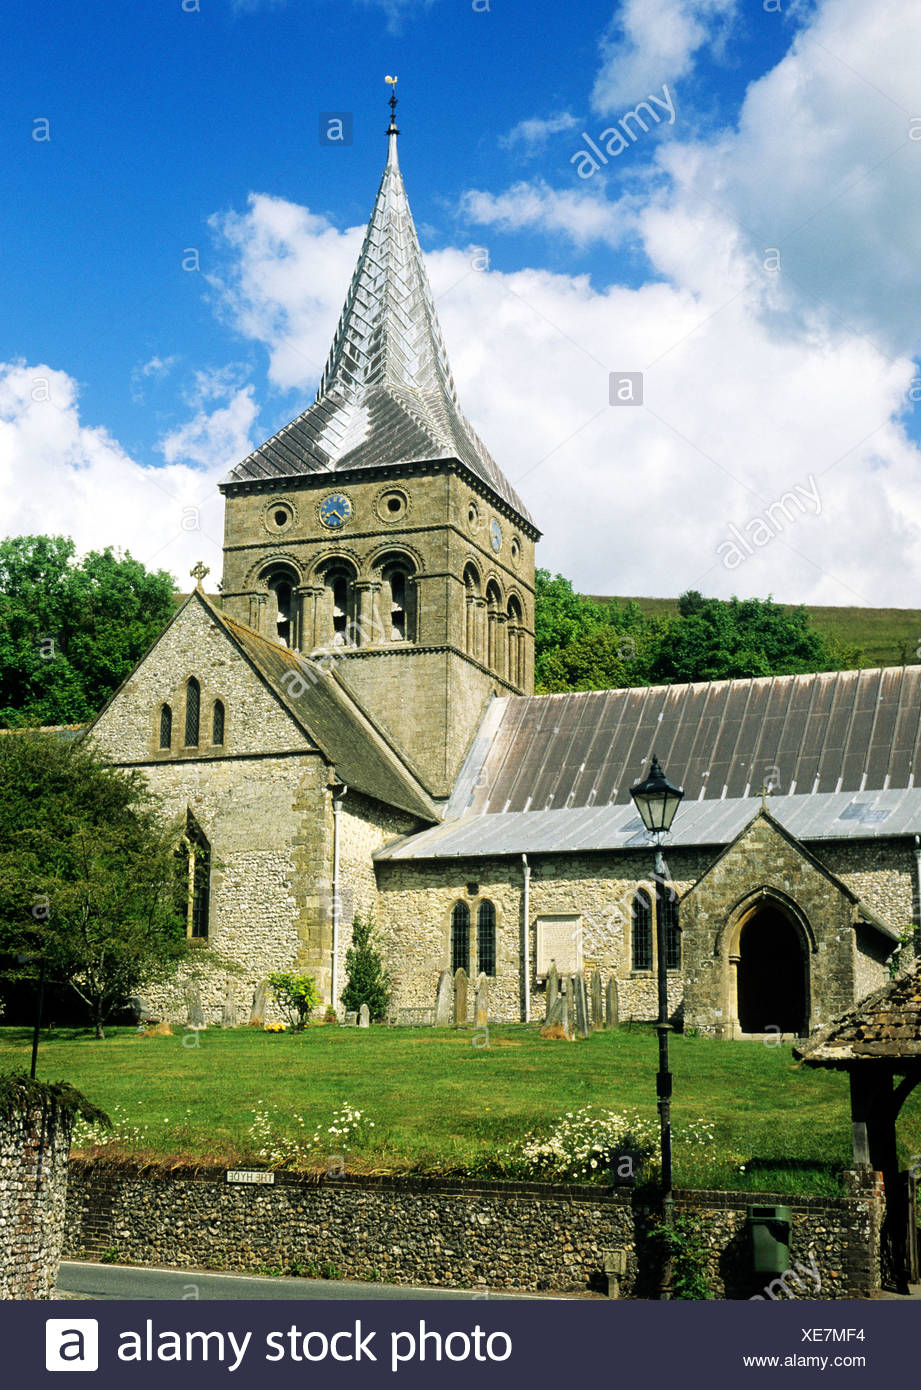 East Meon, All Saints Church, Hampshire England UK English churches Meon Valley central Norman tower towers 12th century - Stock Image